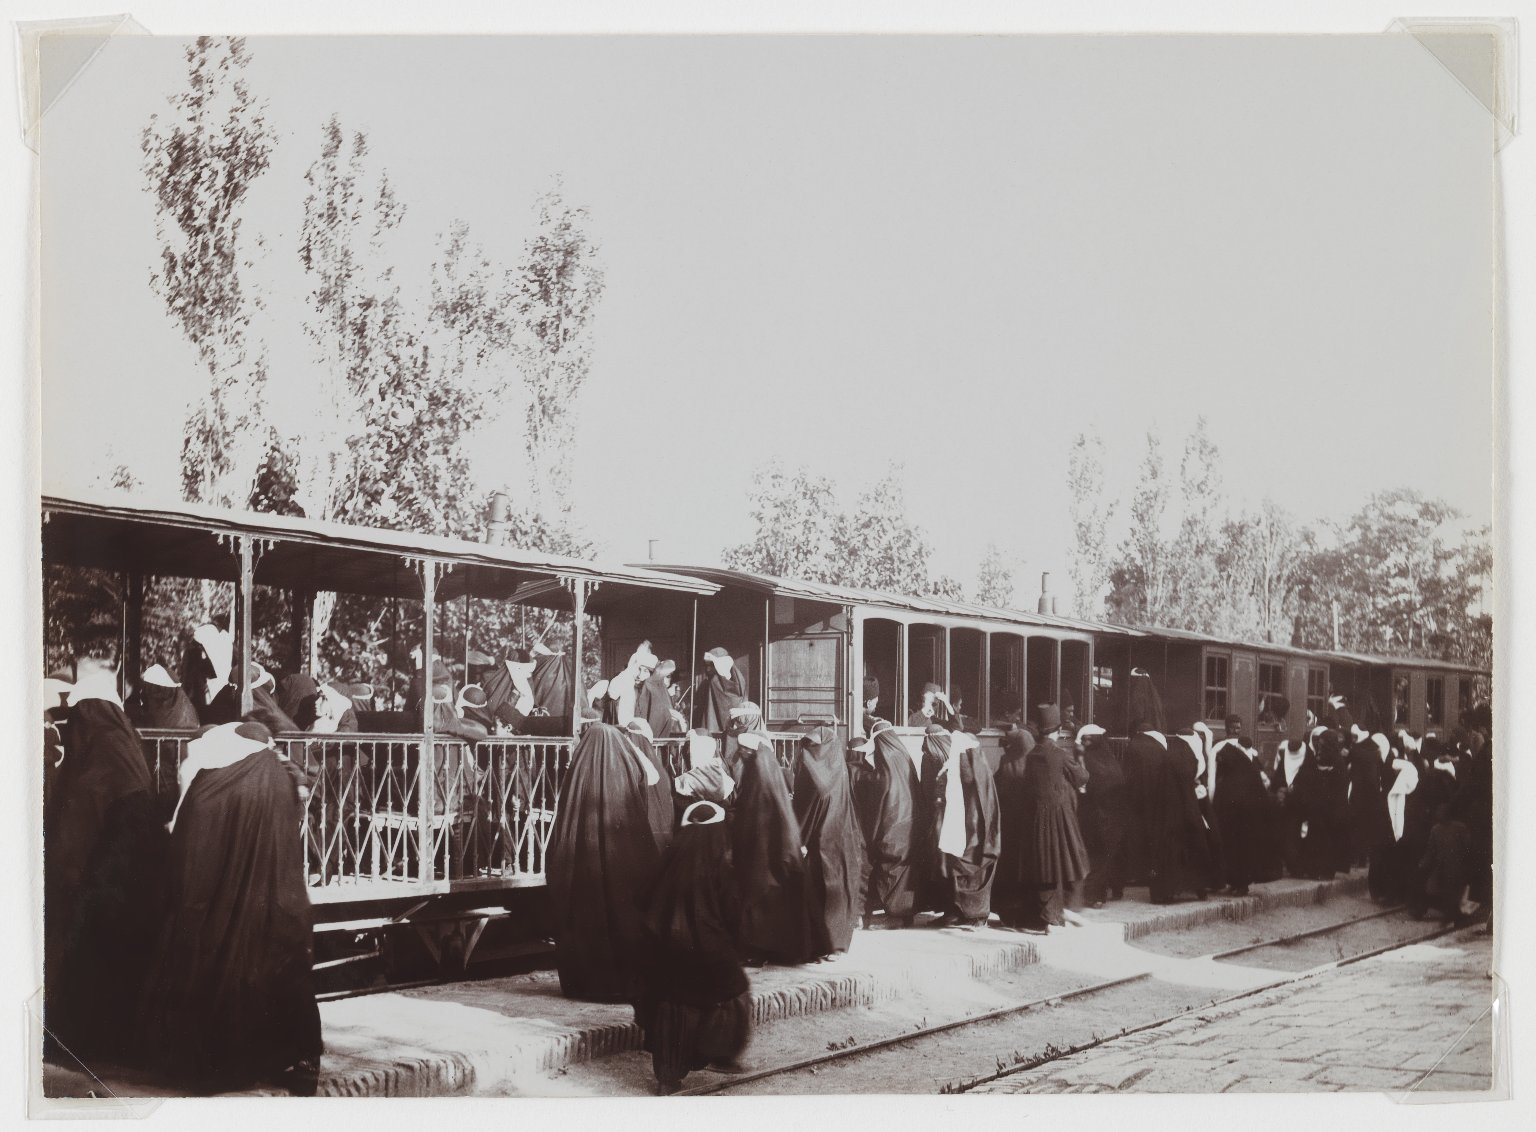 Brooklyn Museum: Veiled Women Boarding a Train, One of 274 Vintage Photographs